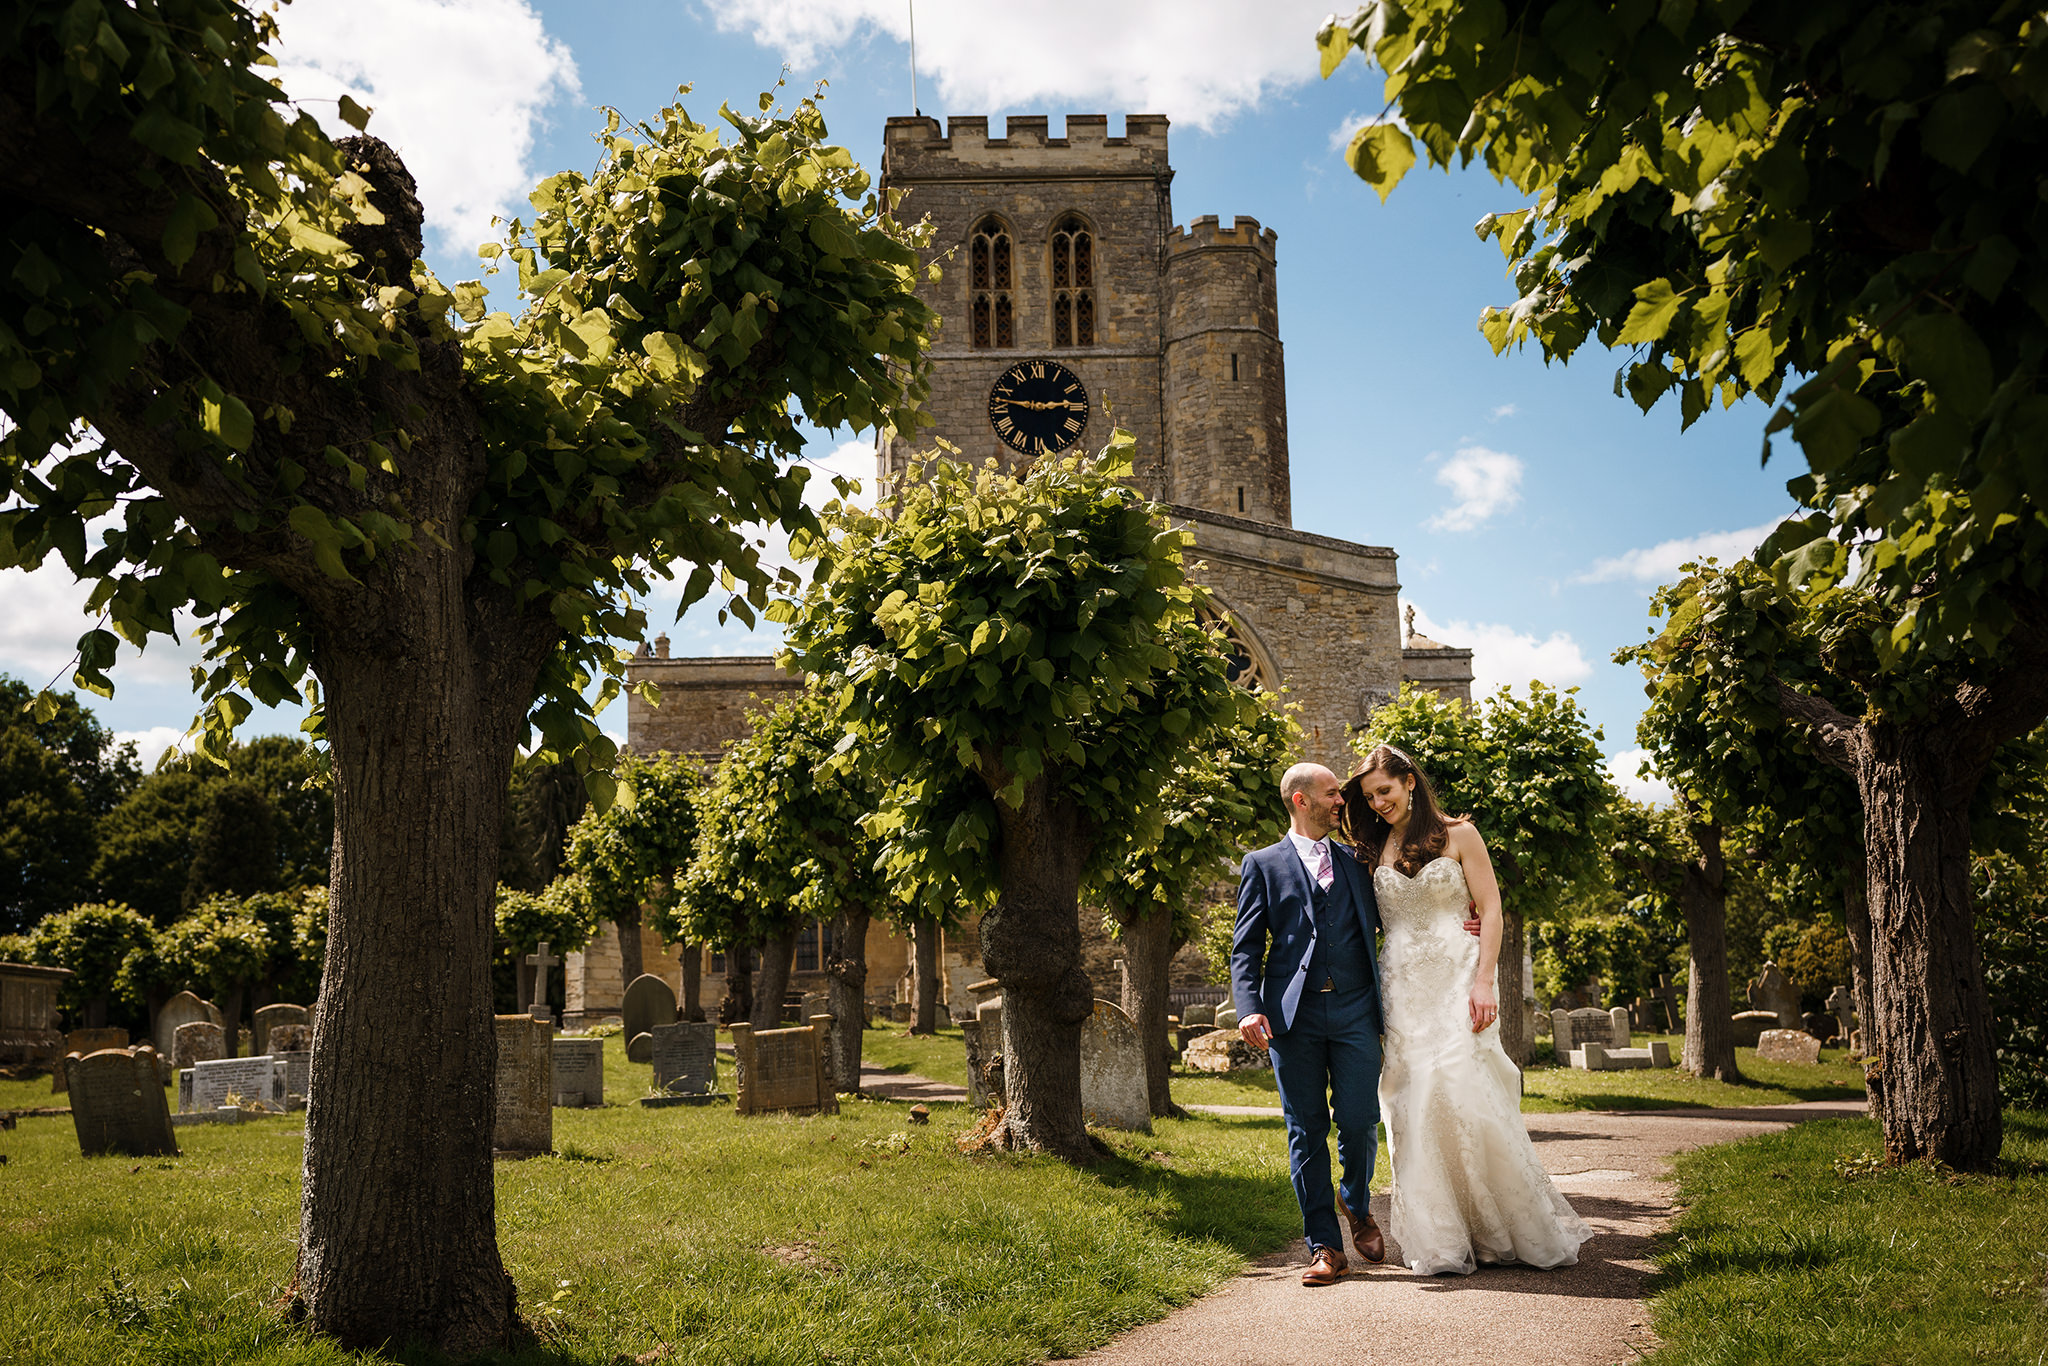 Regan and Alex - Thame, Oxfordshire